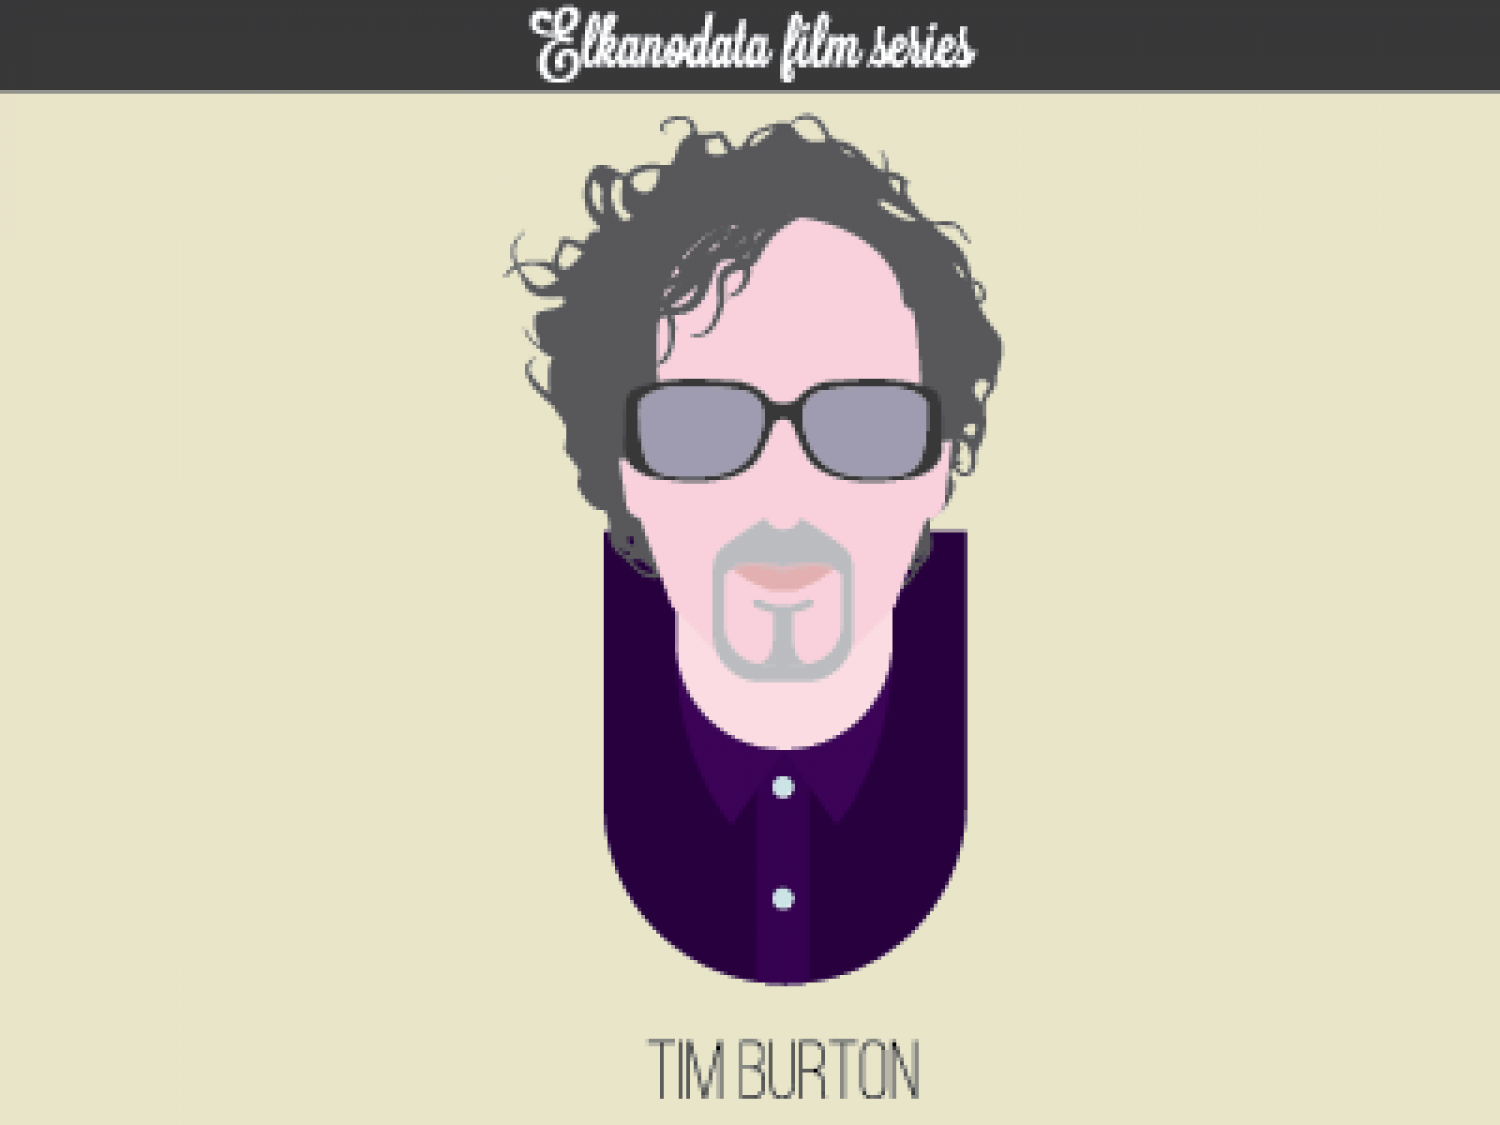 Quintessential Quotes From Cult Film Directors: Tim Burton Infographic